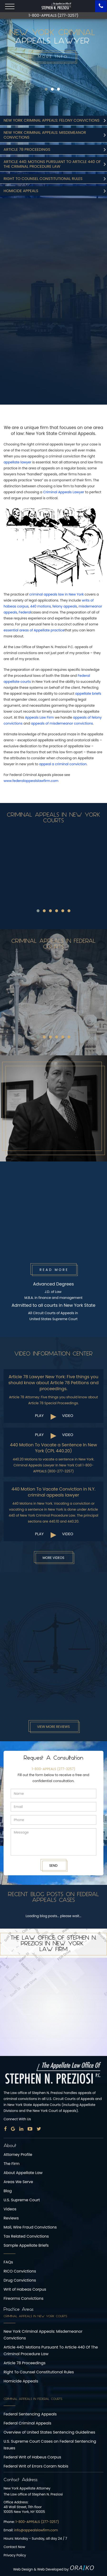 The Appellate Law Office of Stephen N. Preziosi P.C. - New York NY Lawyers